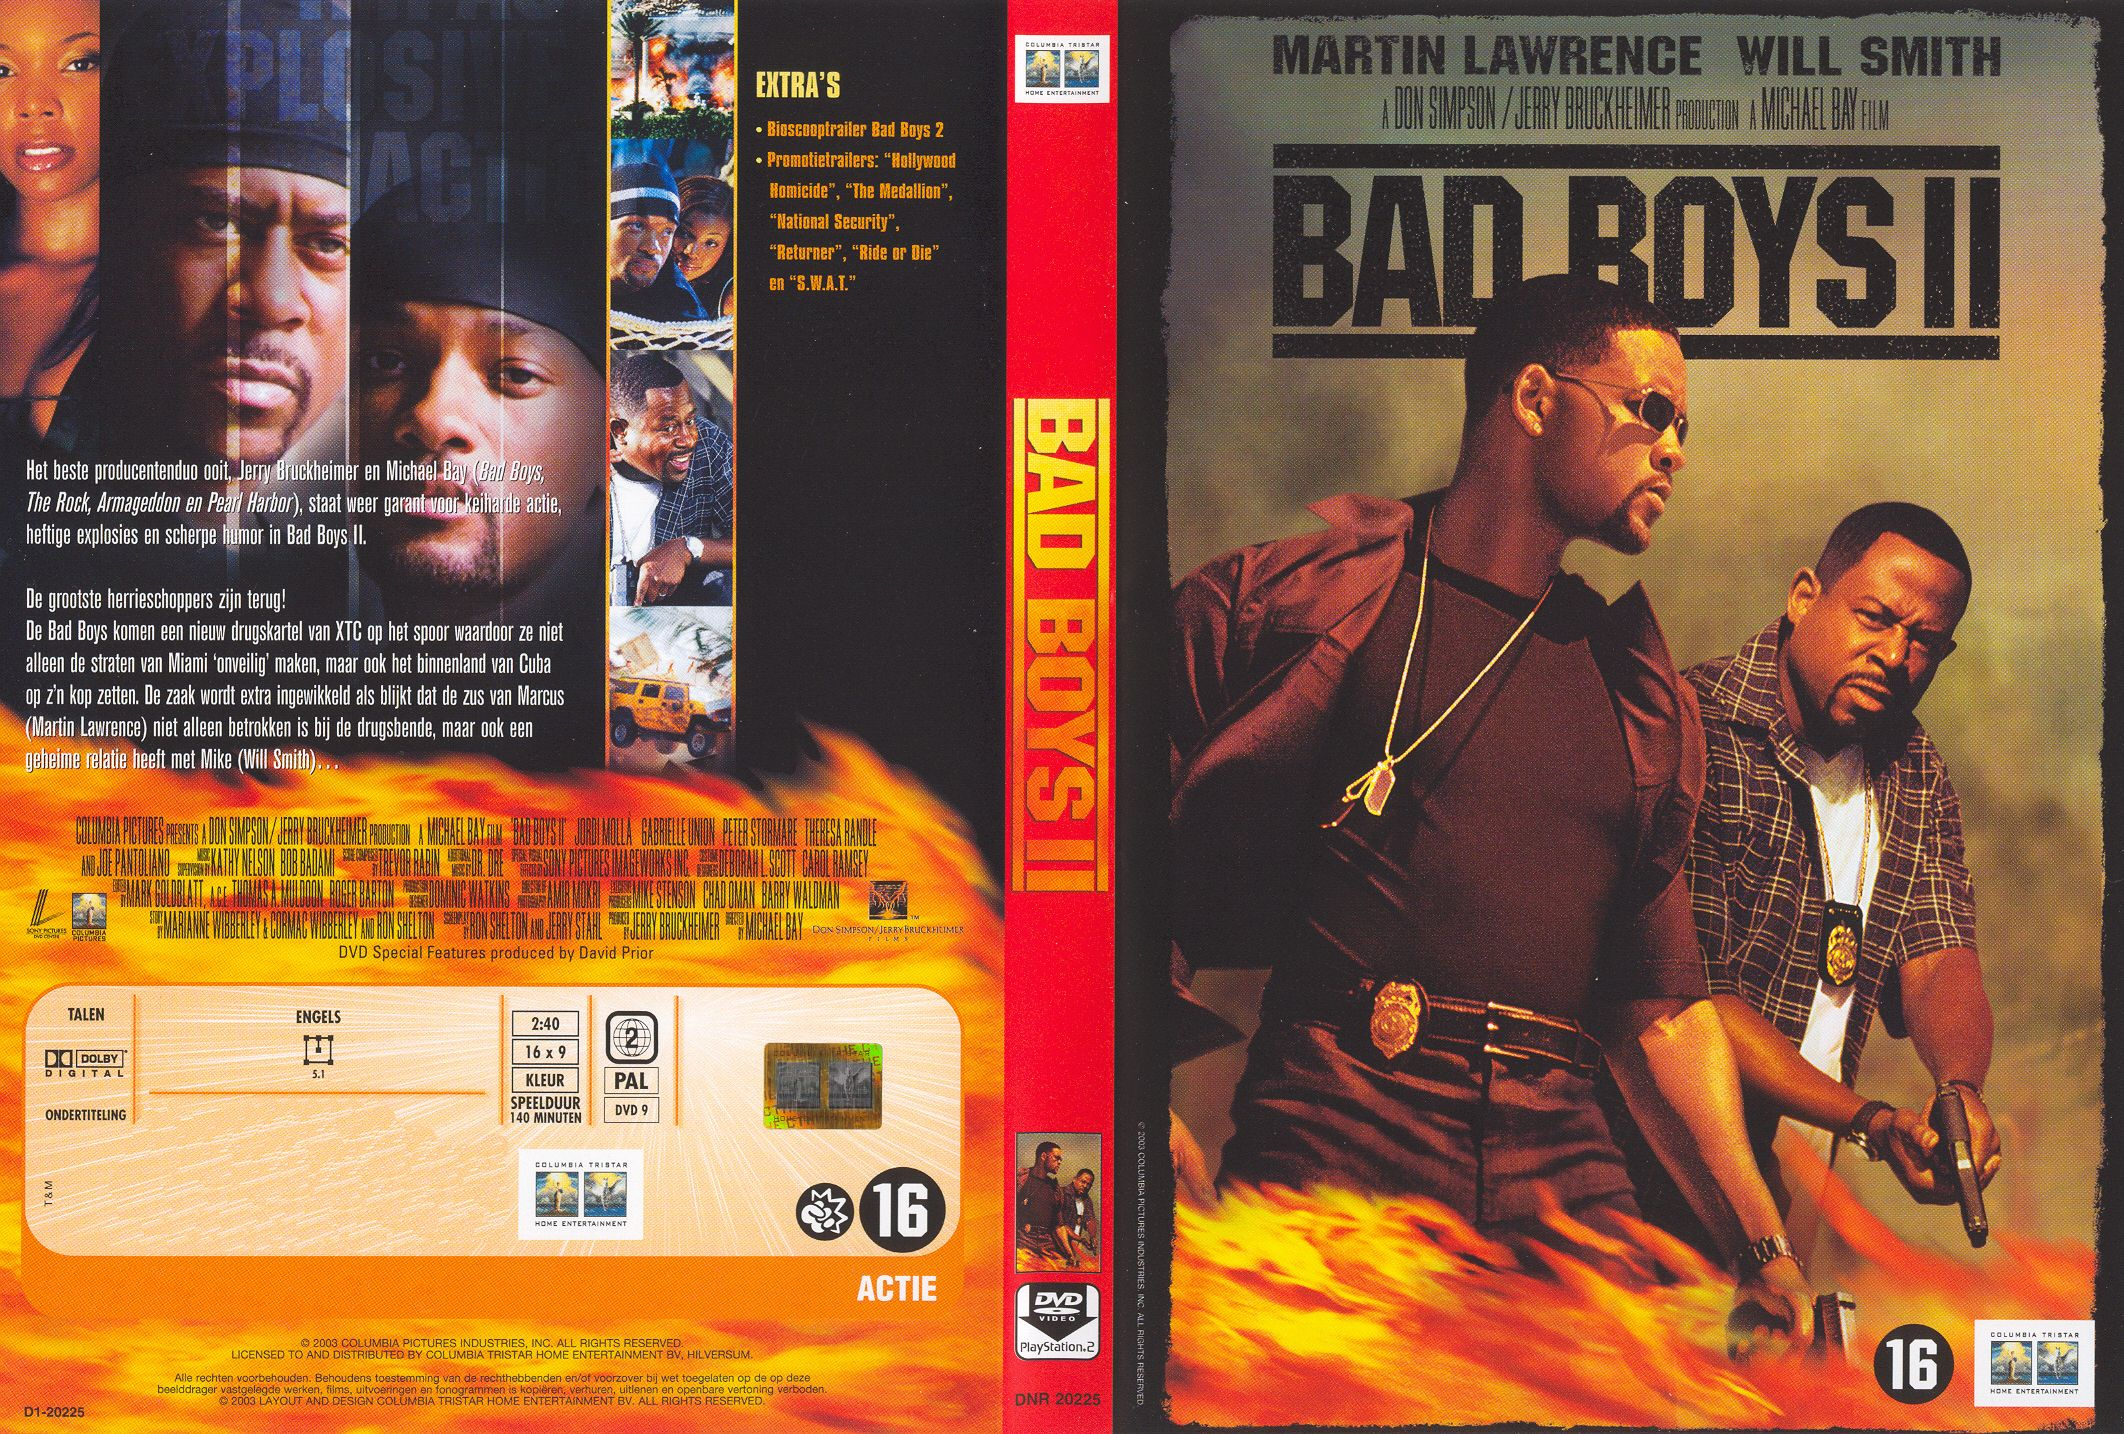 Bad Boys Ii Pal Misc Dvd Dvd Covers Cover Century Over 500 000 Album Art Covers For Free